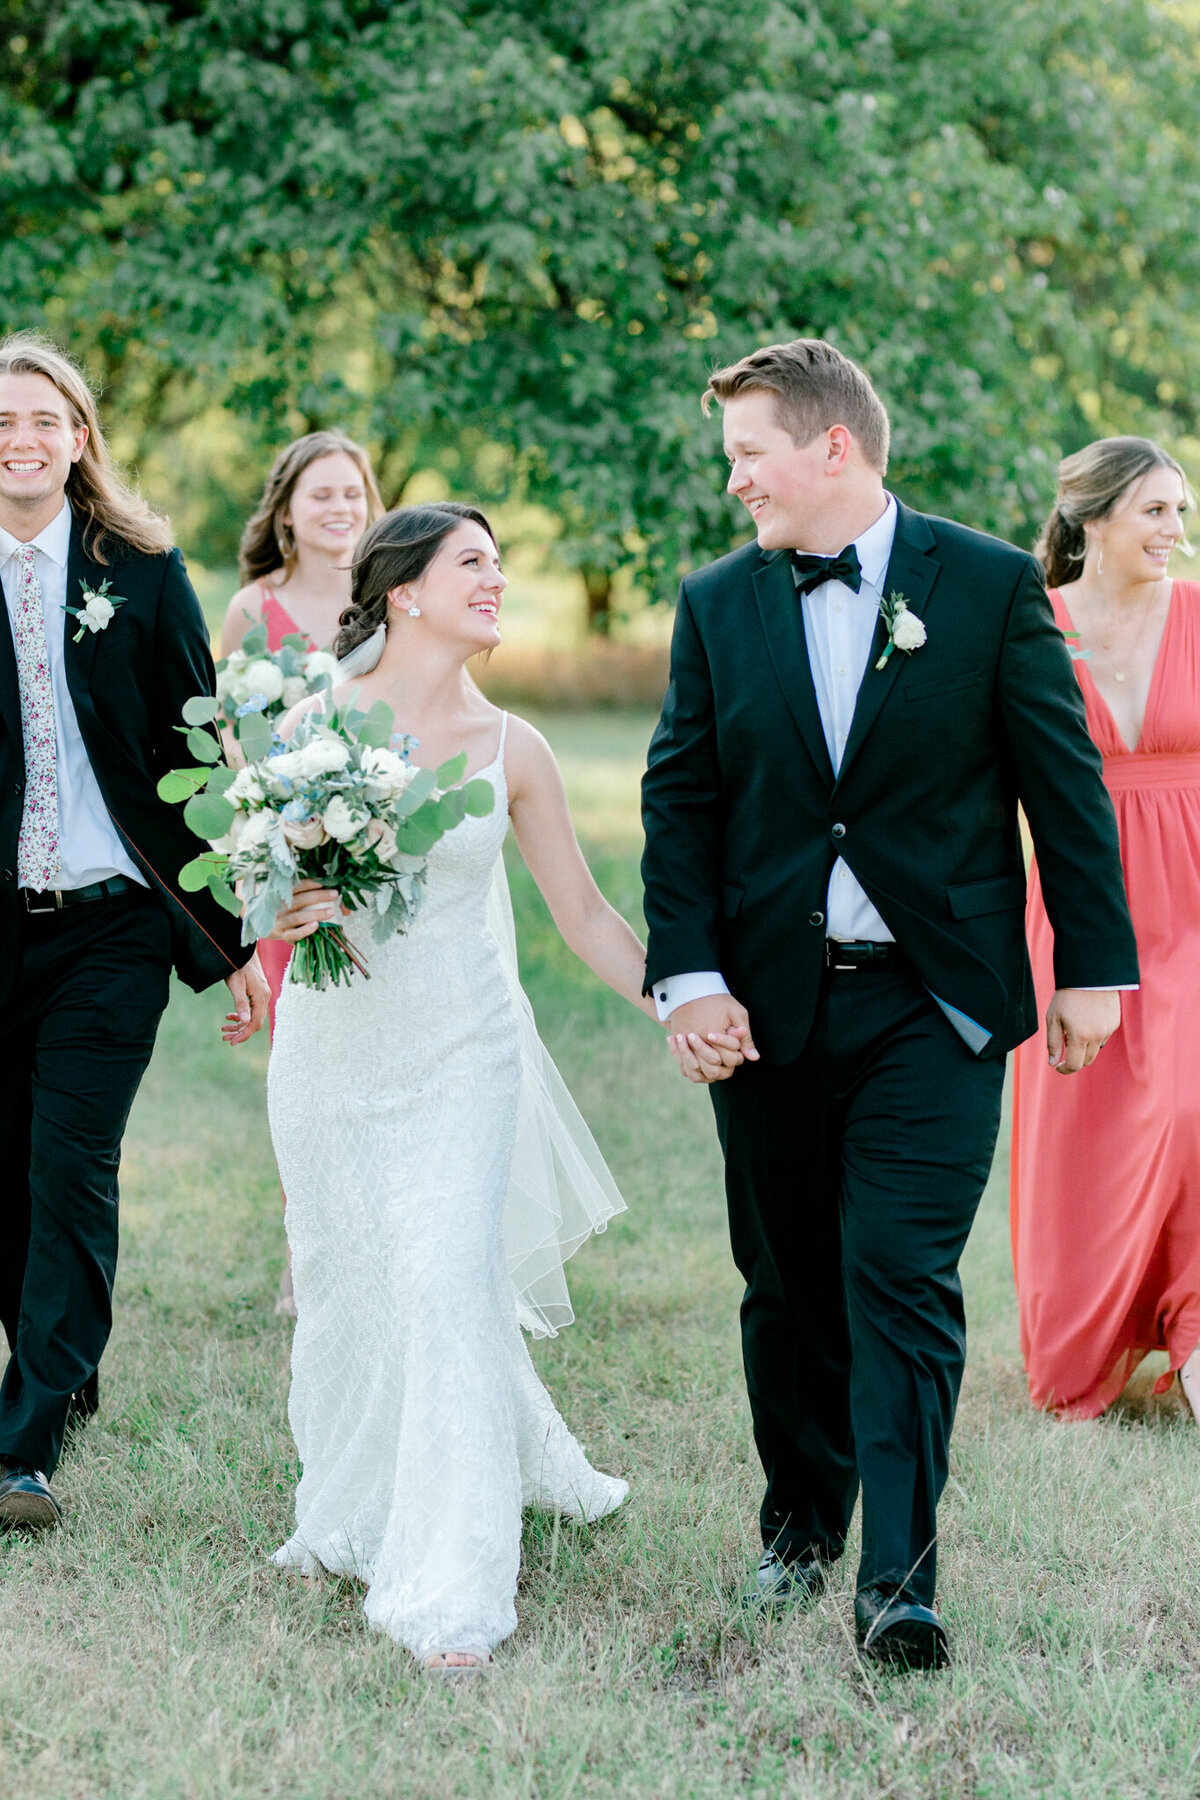 Anna & Billy's Wedding at The Nest at Ruth Farms | Dallas Wedding Photographer | Sami Kathryn Photography-158